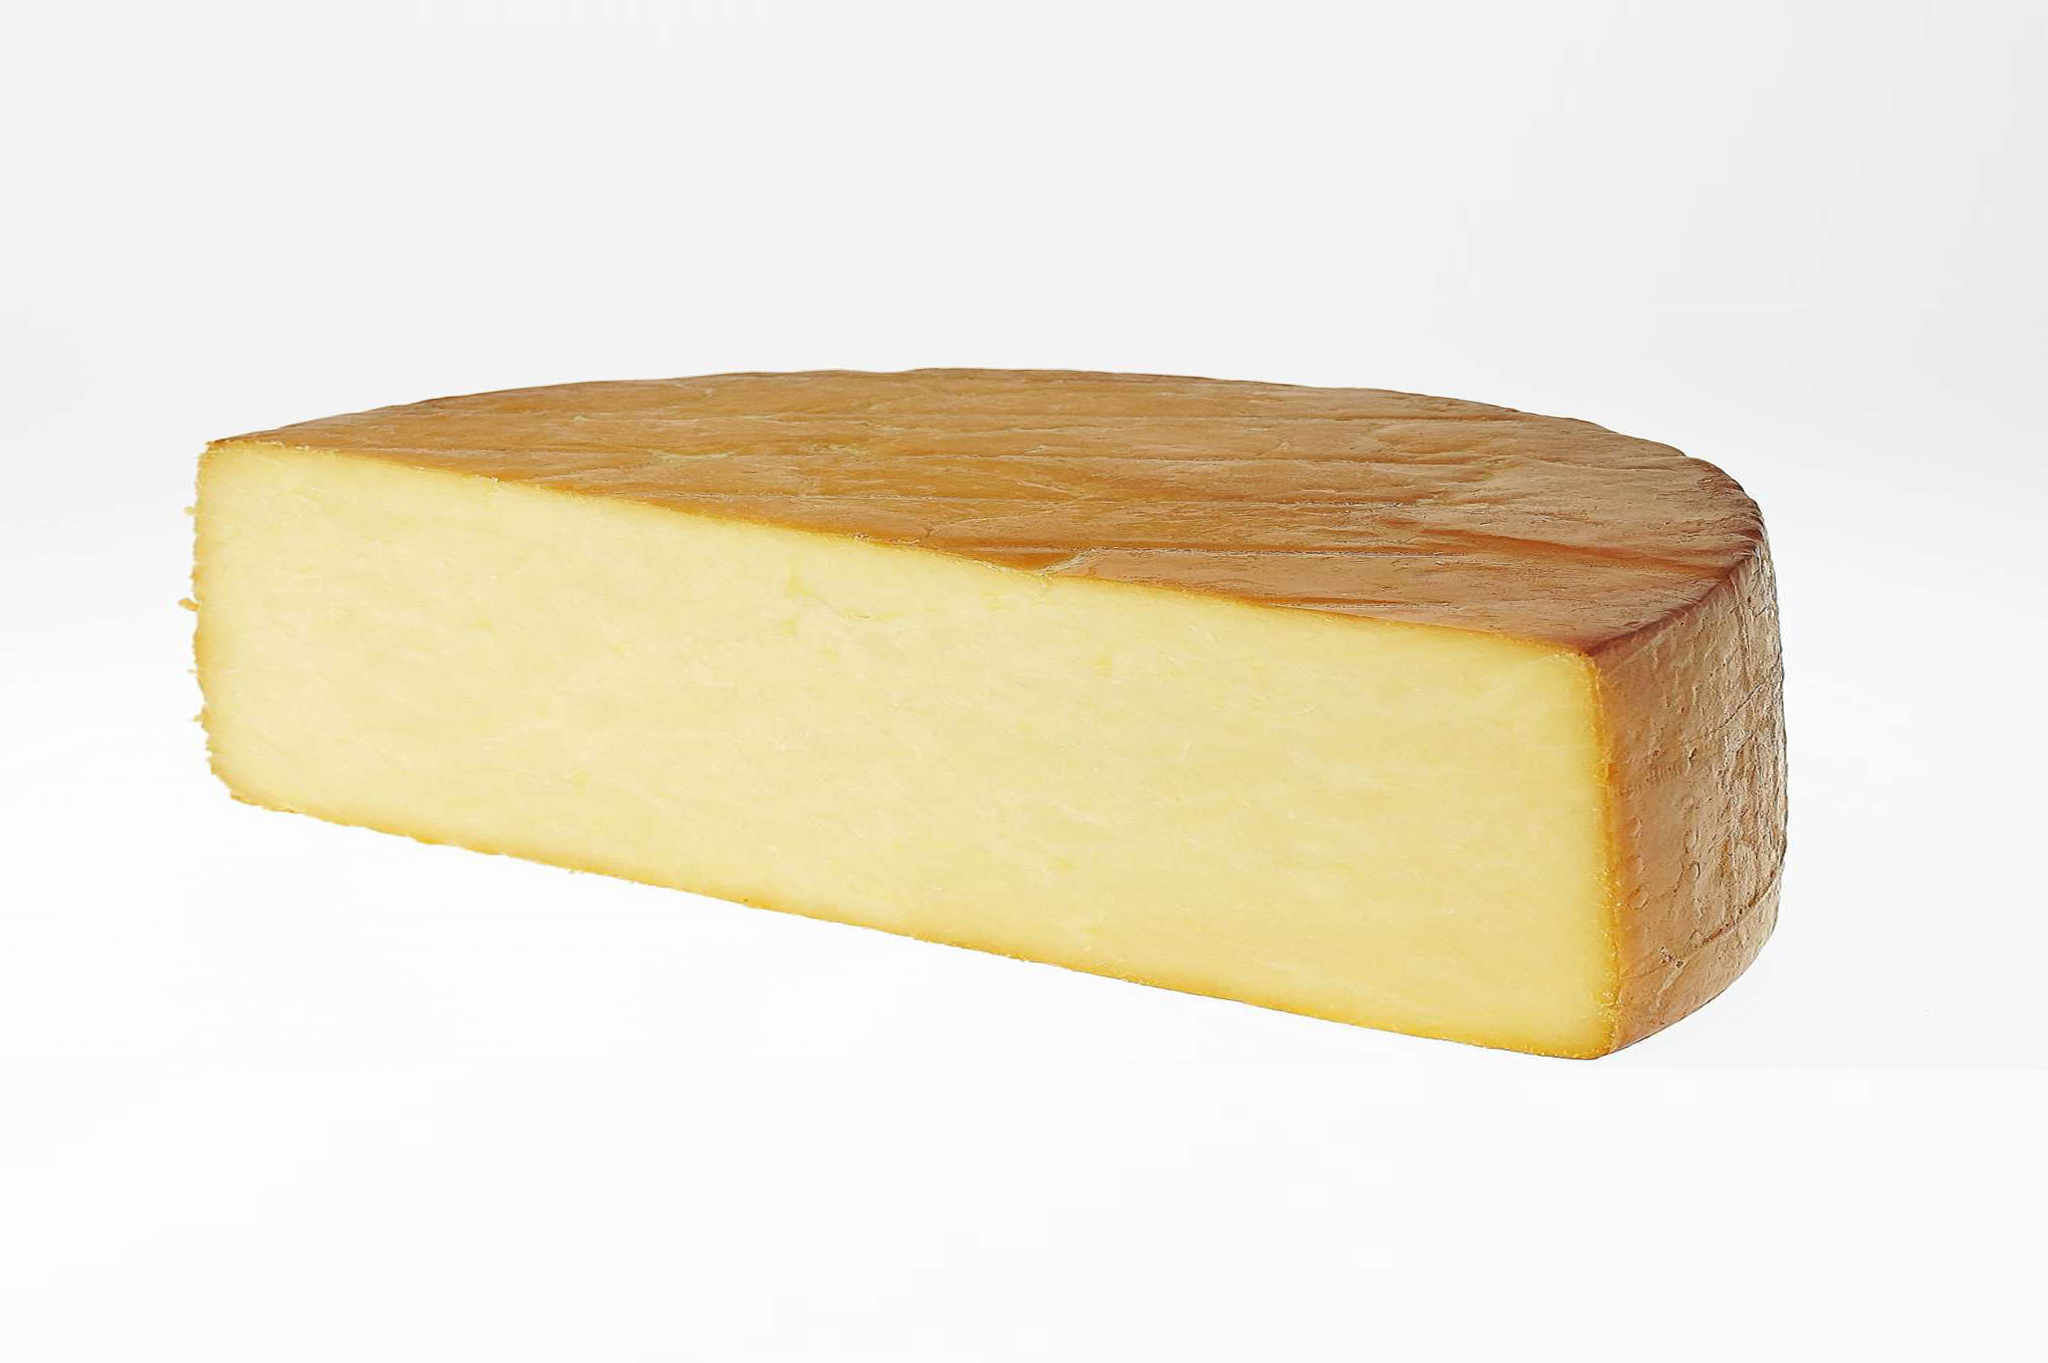 Smoked Cheddar - A naturally hardwood smoked Australian cheddar. Very savoury and full of flavour.$6.70 per 100g